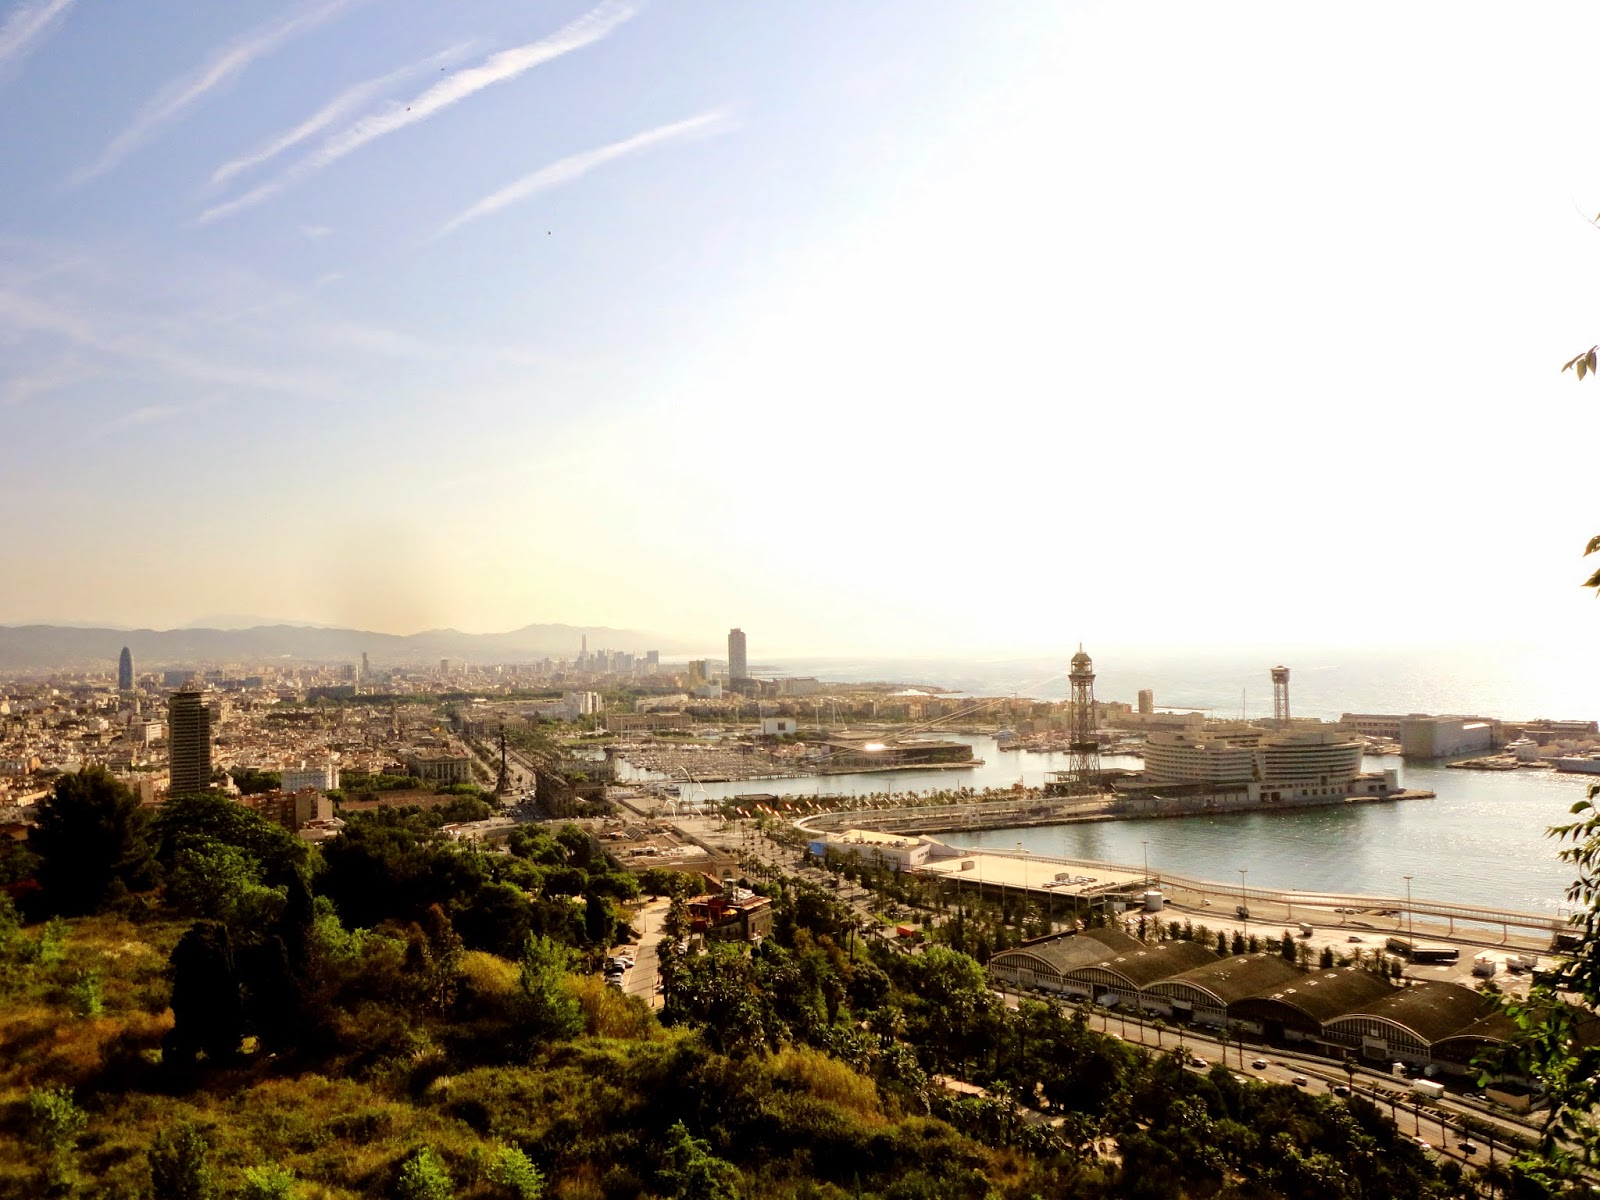 City view of Barcelona from Montjuic hilltop